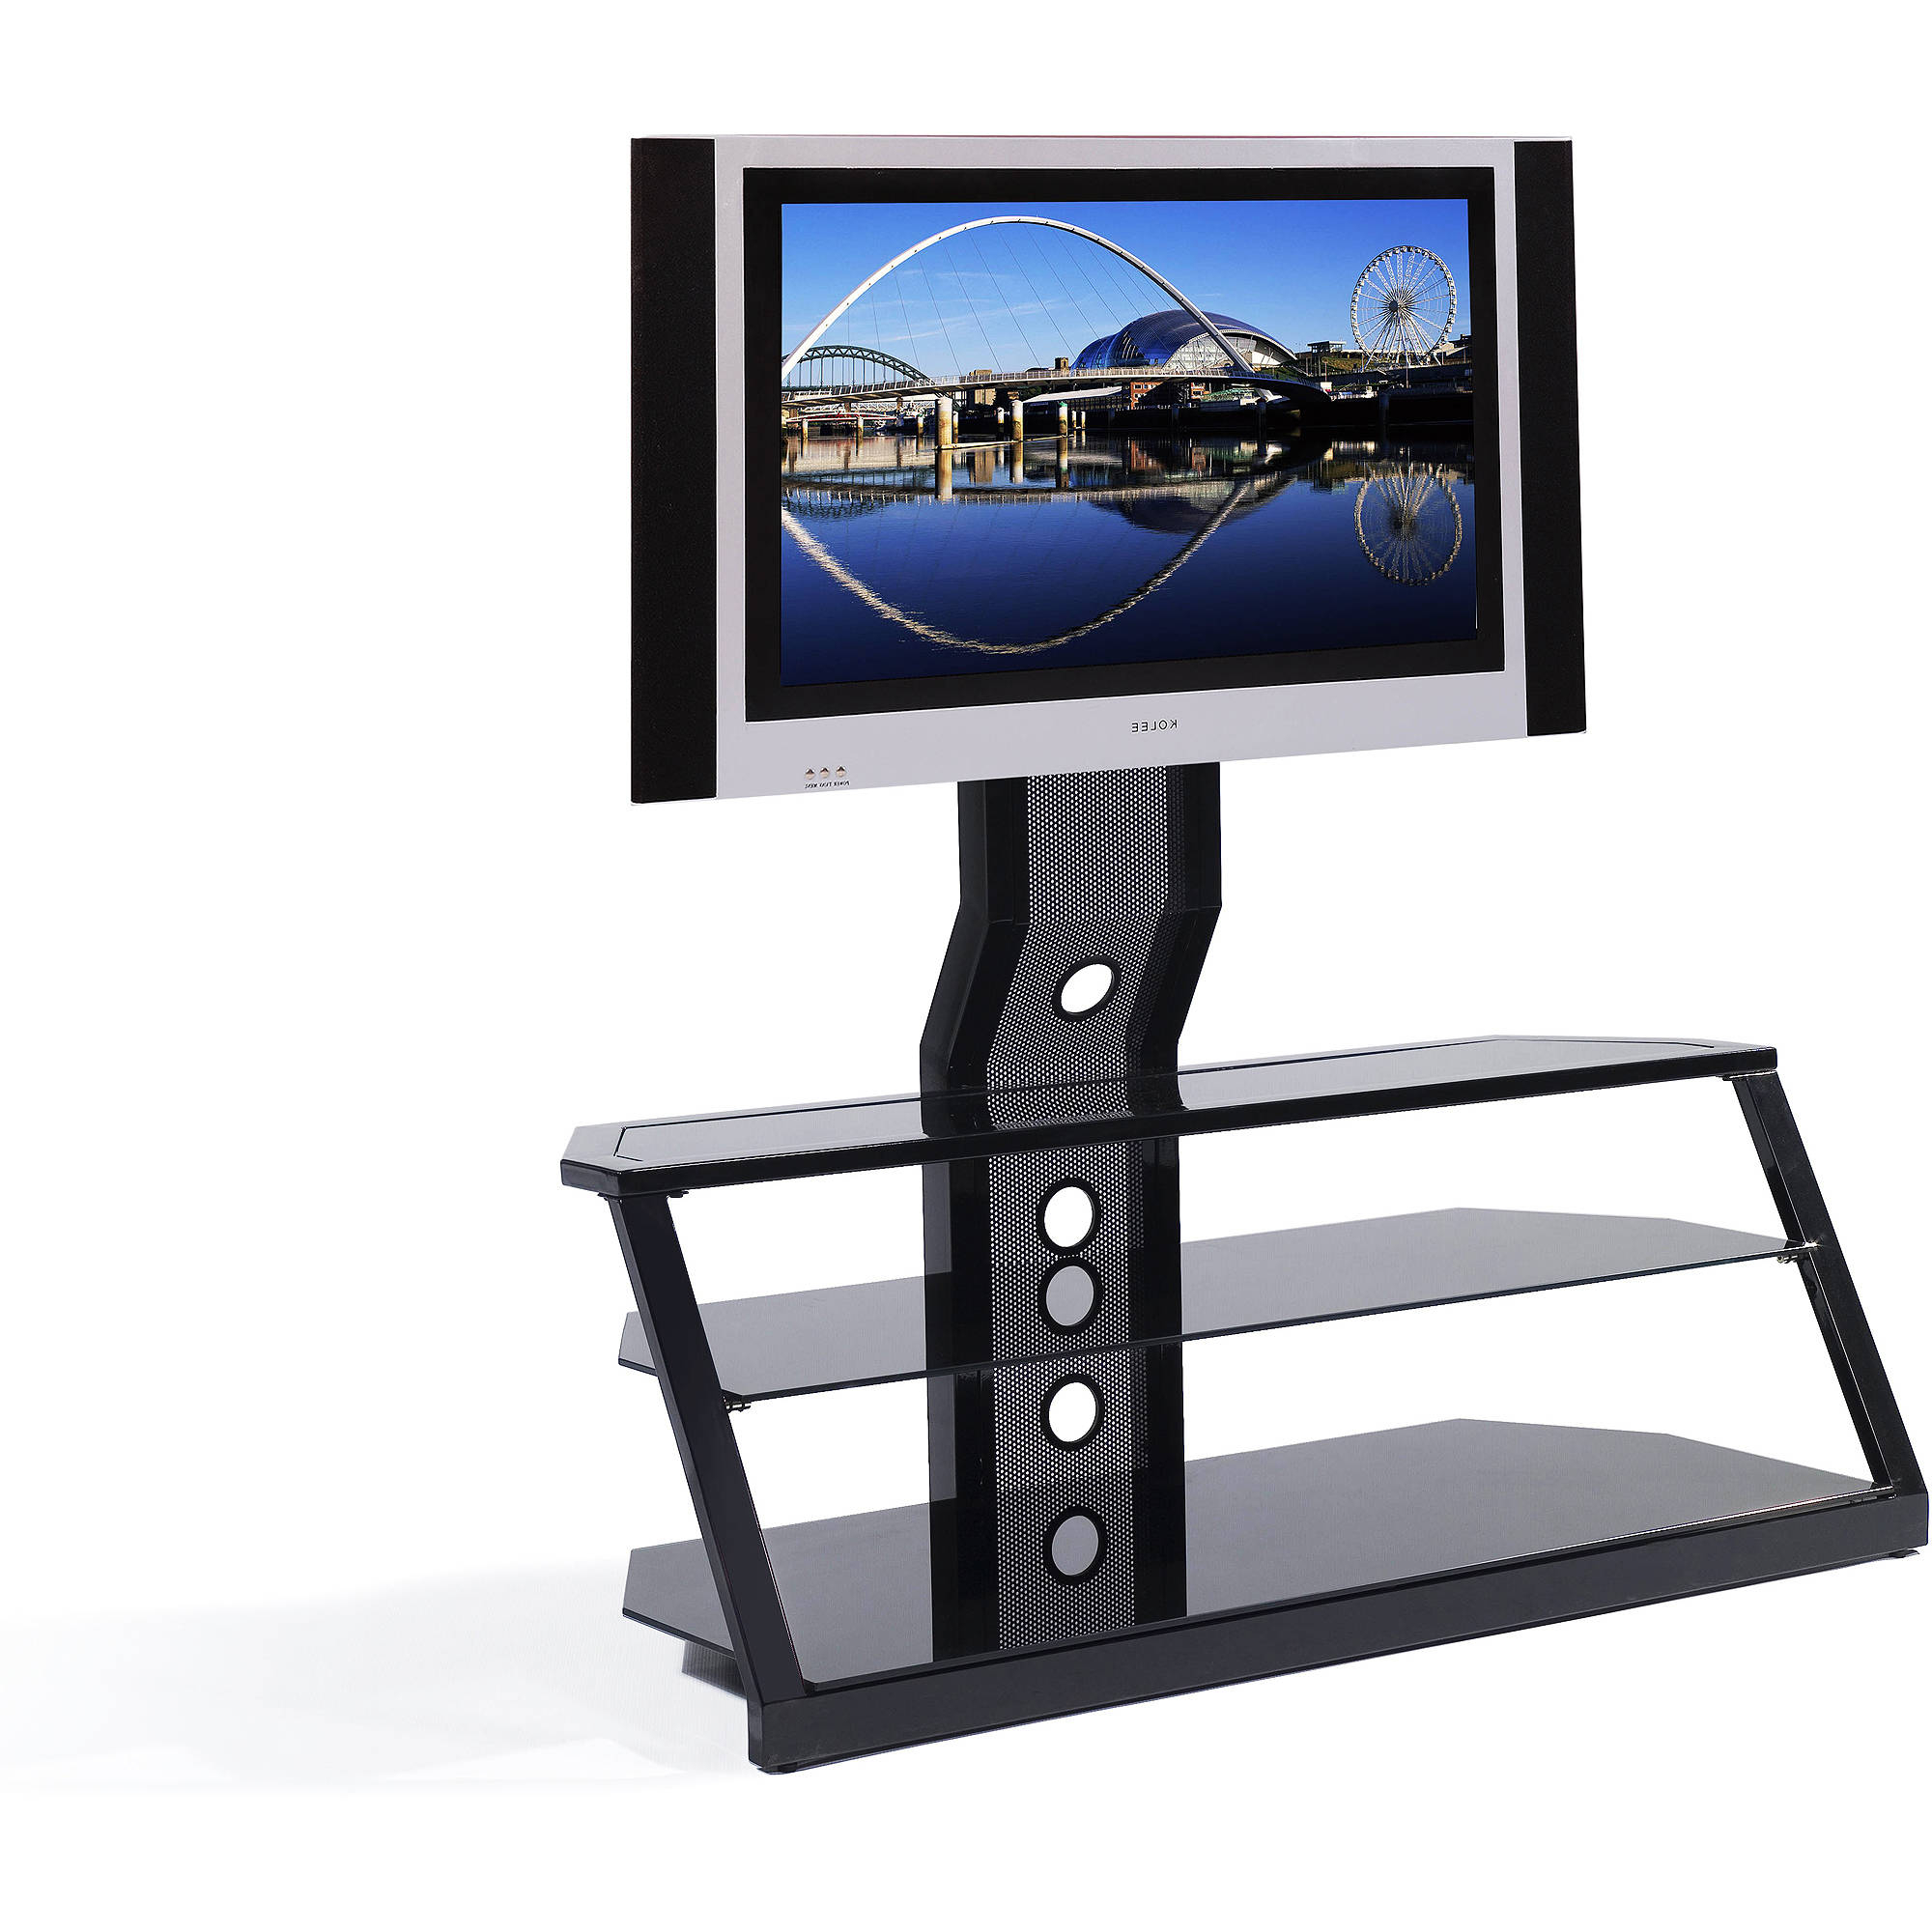 Cordoba Lcd/plasma Flat Panel Mount Tv C – Walmart Pertaining To Newest Vizio 24 Inch Tv Stands (Gallery 9 of 20)